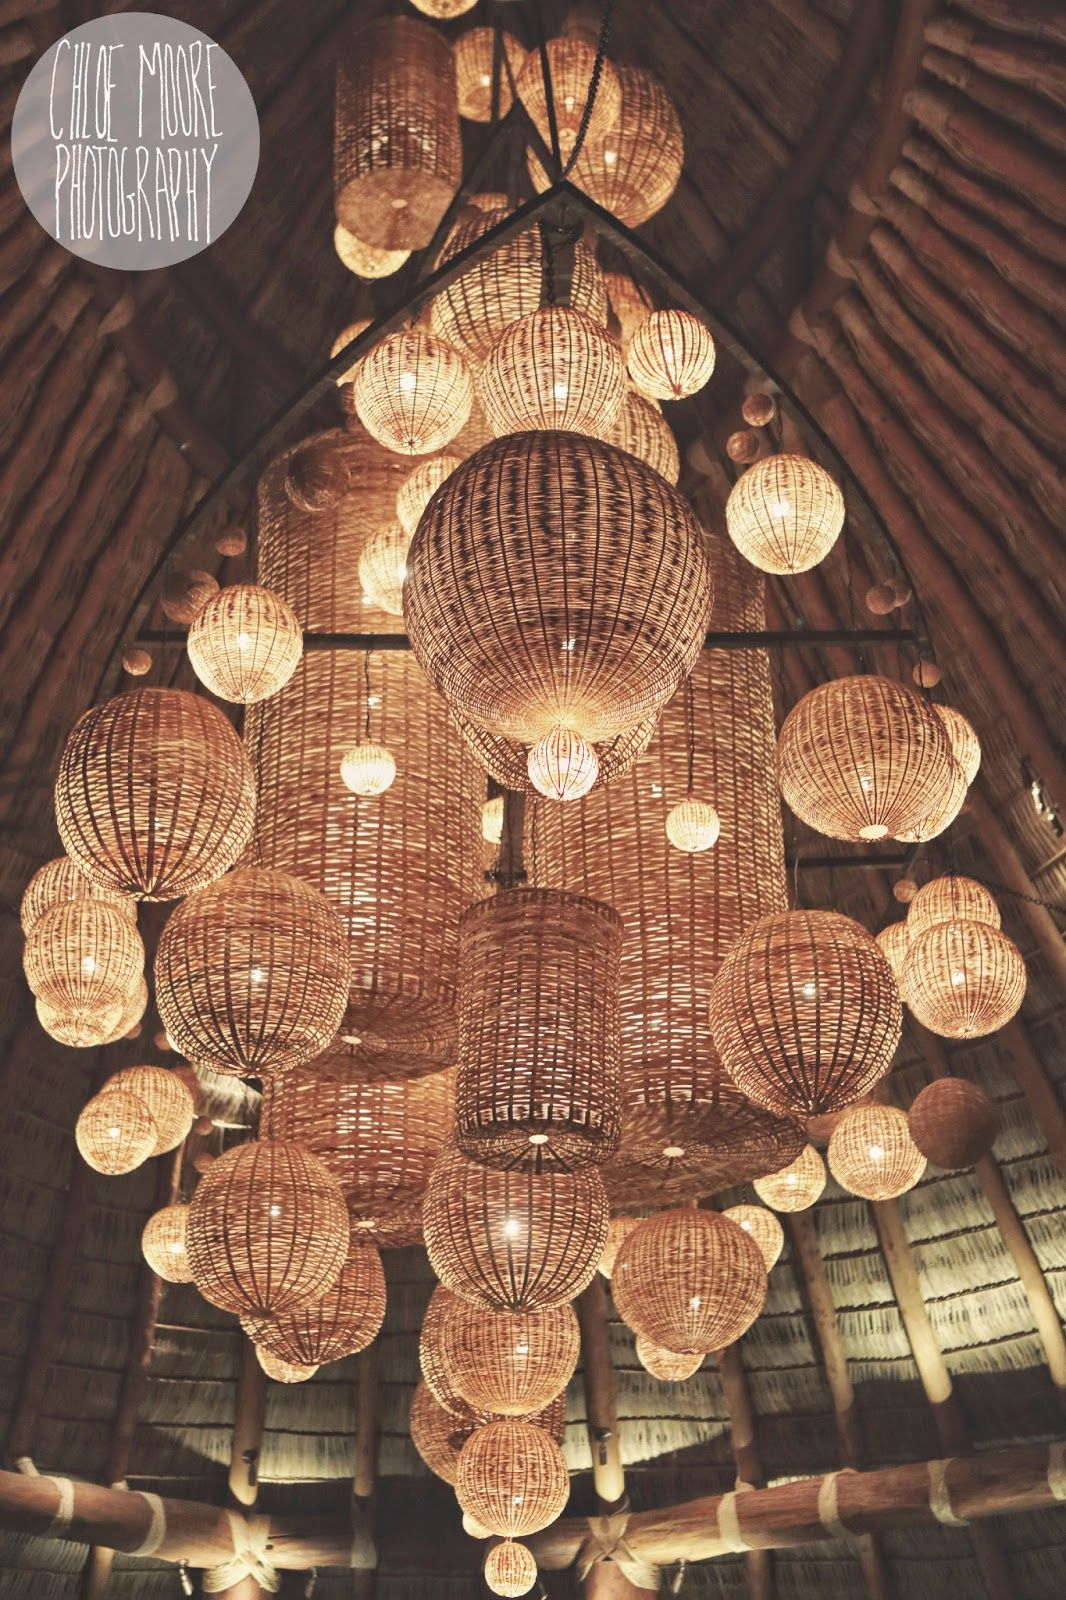 lighting Awesome ResortNicaragua wicker basket Mukul RjAL543